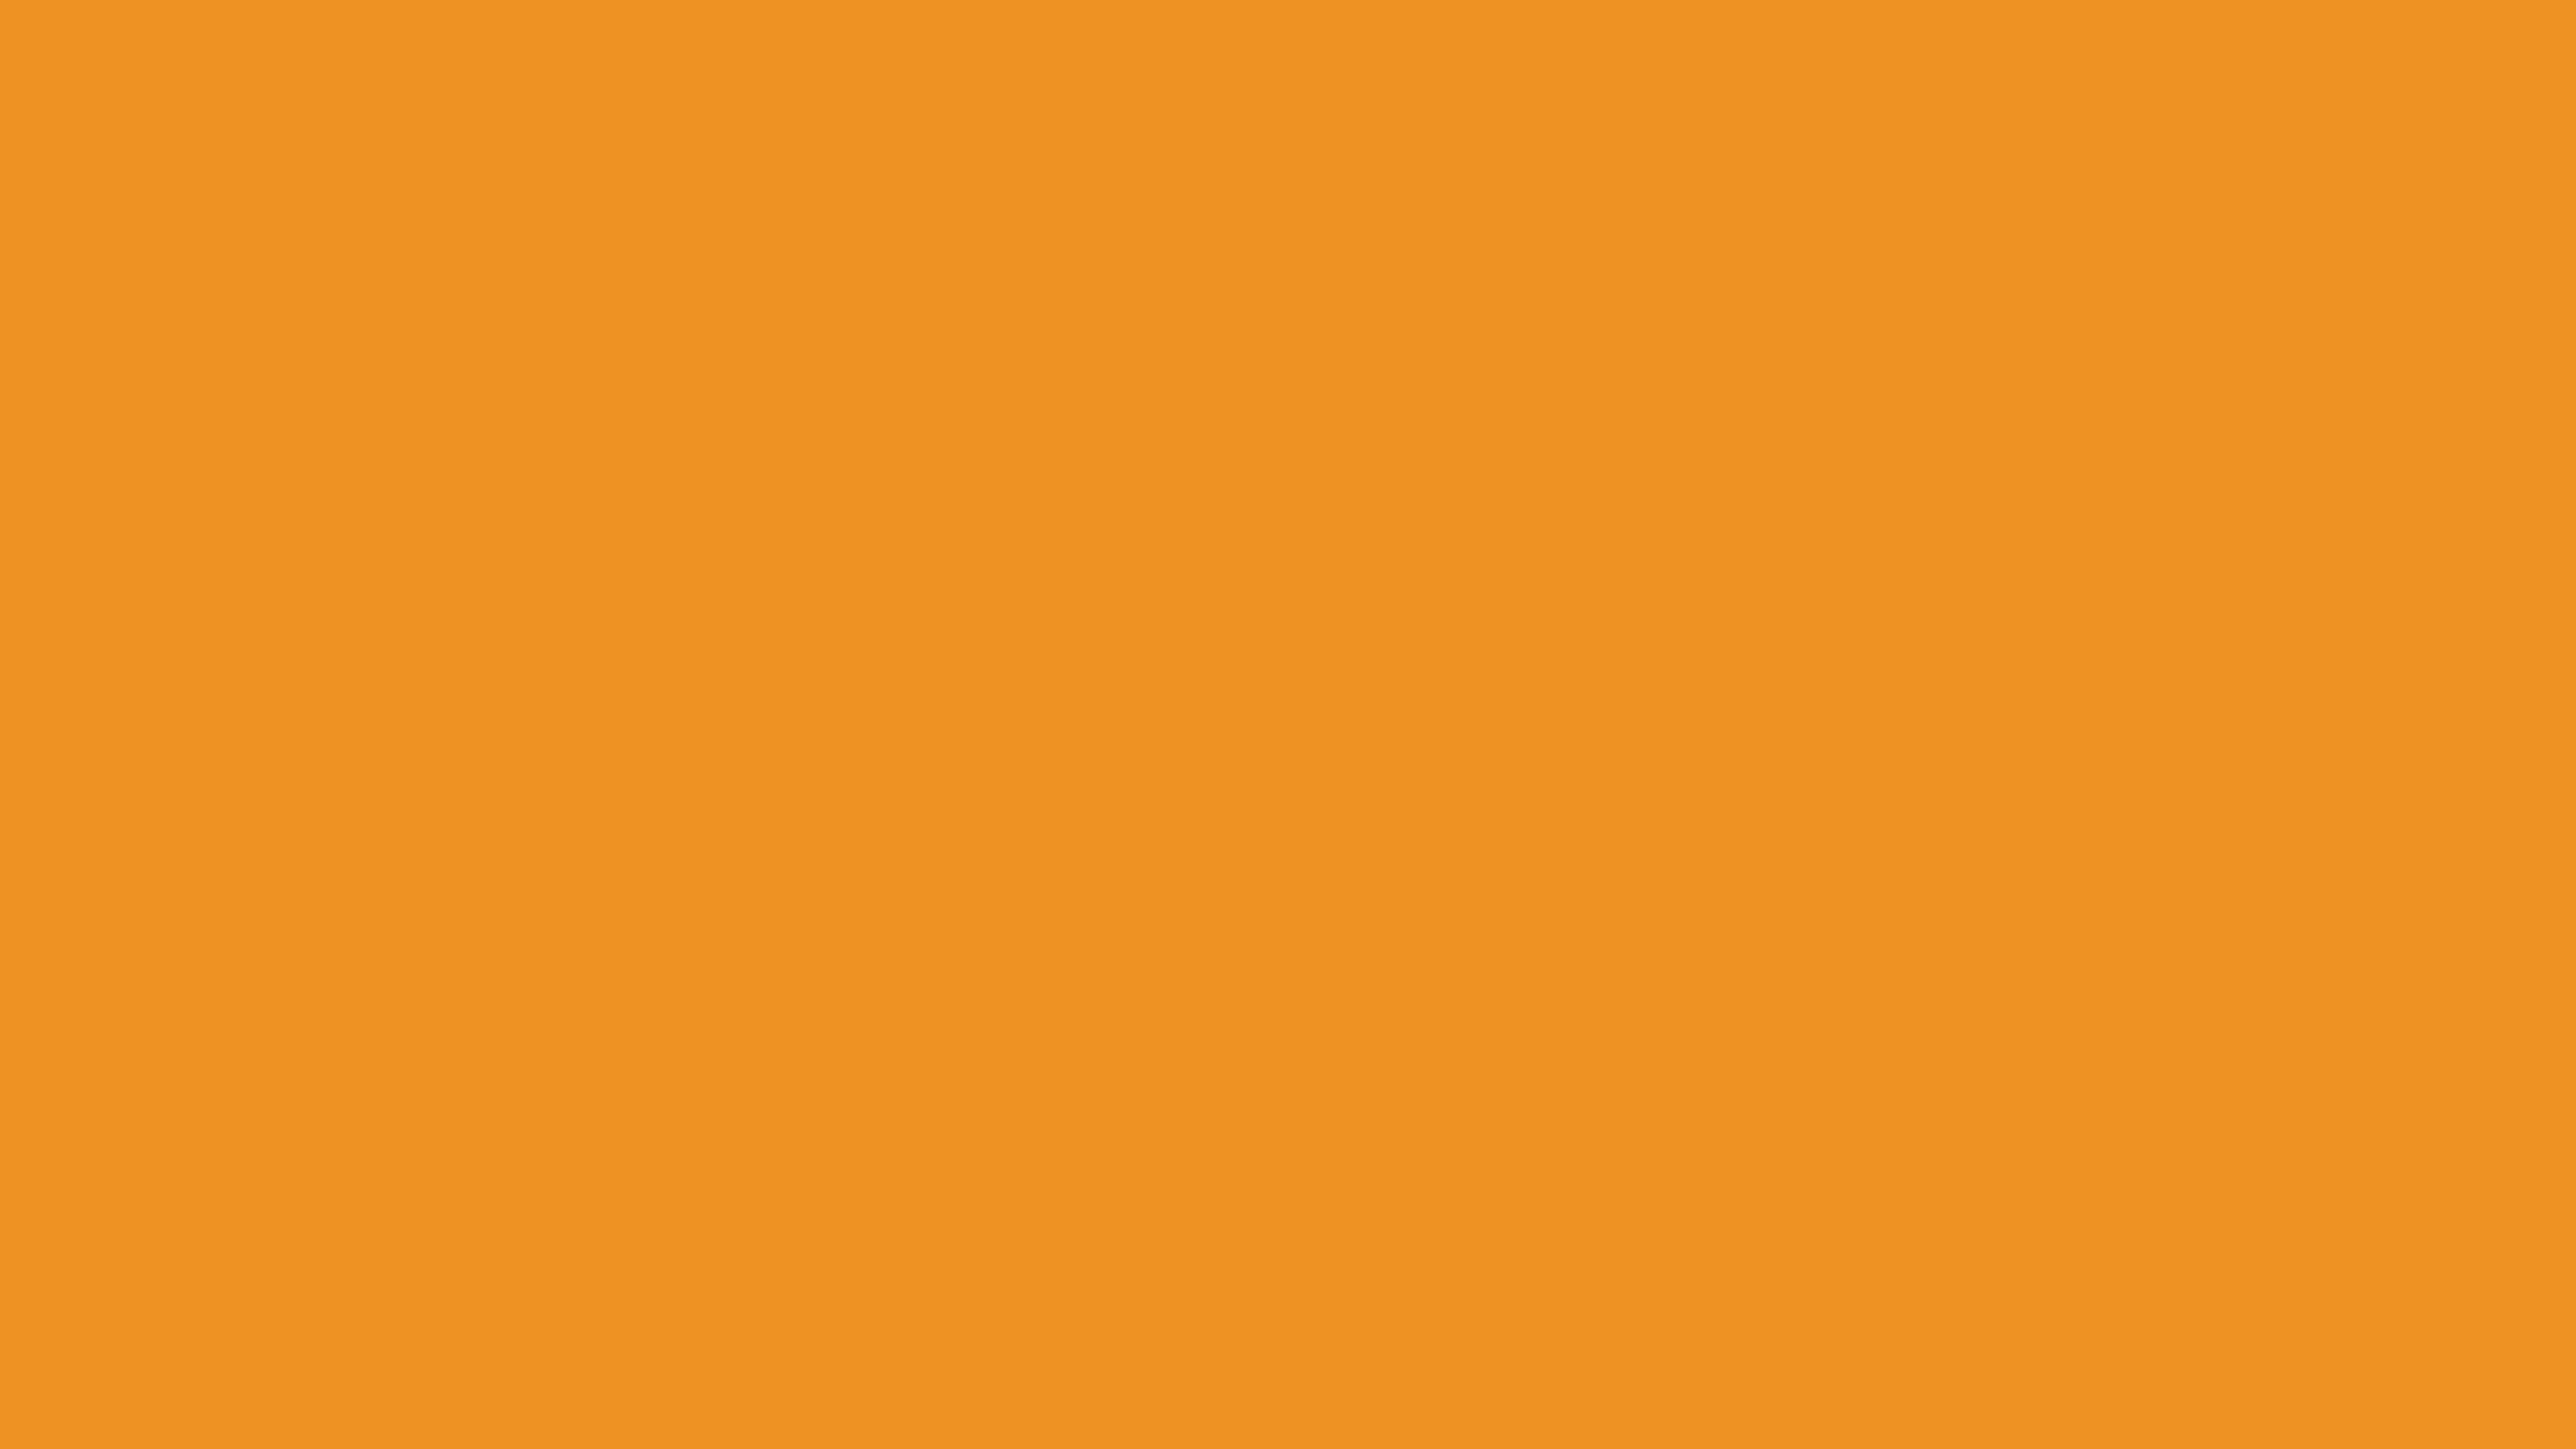 4096x2304 Carrot Orange Solid Color Background